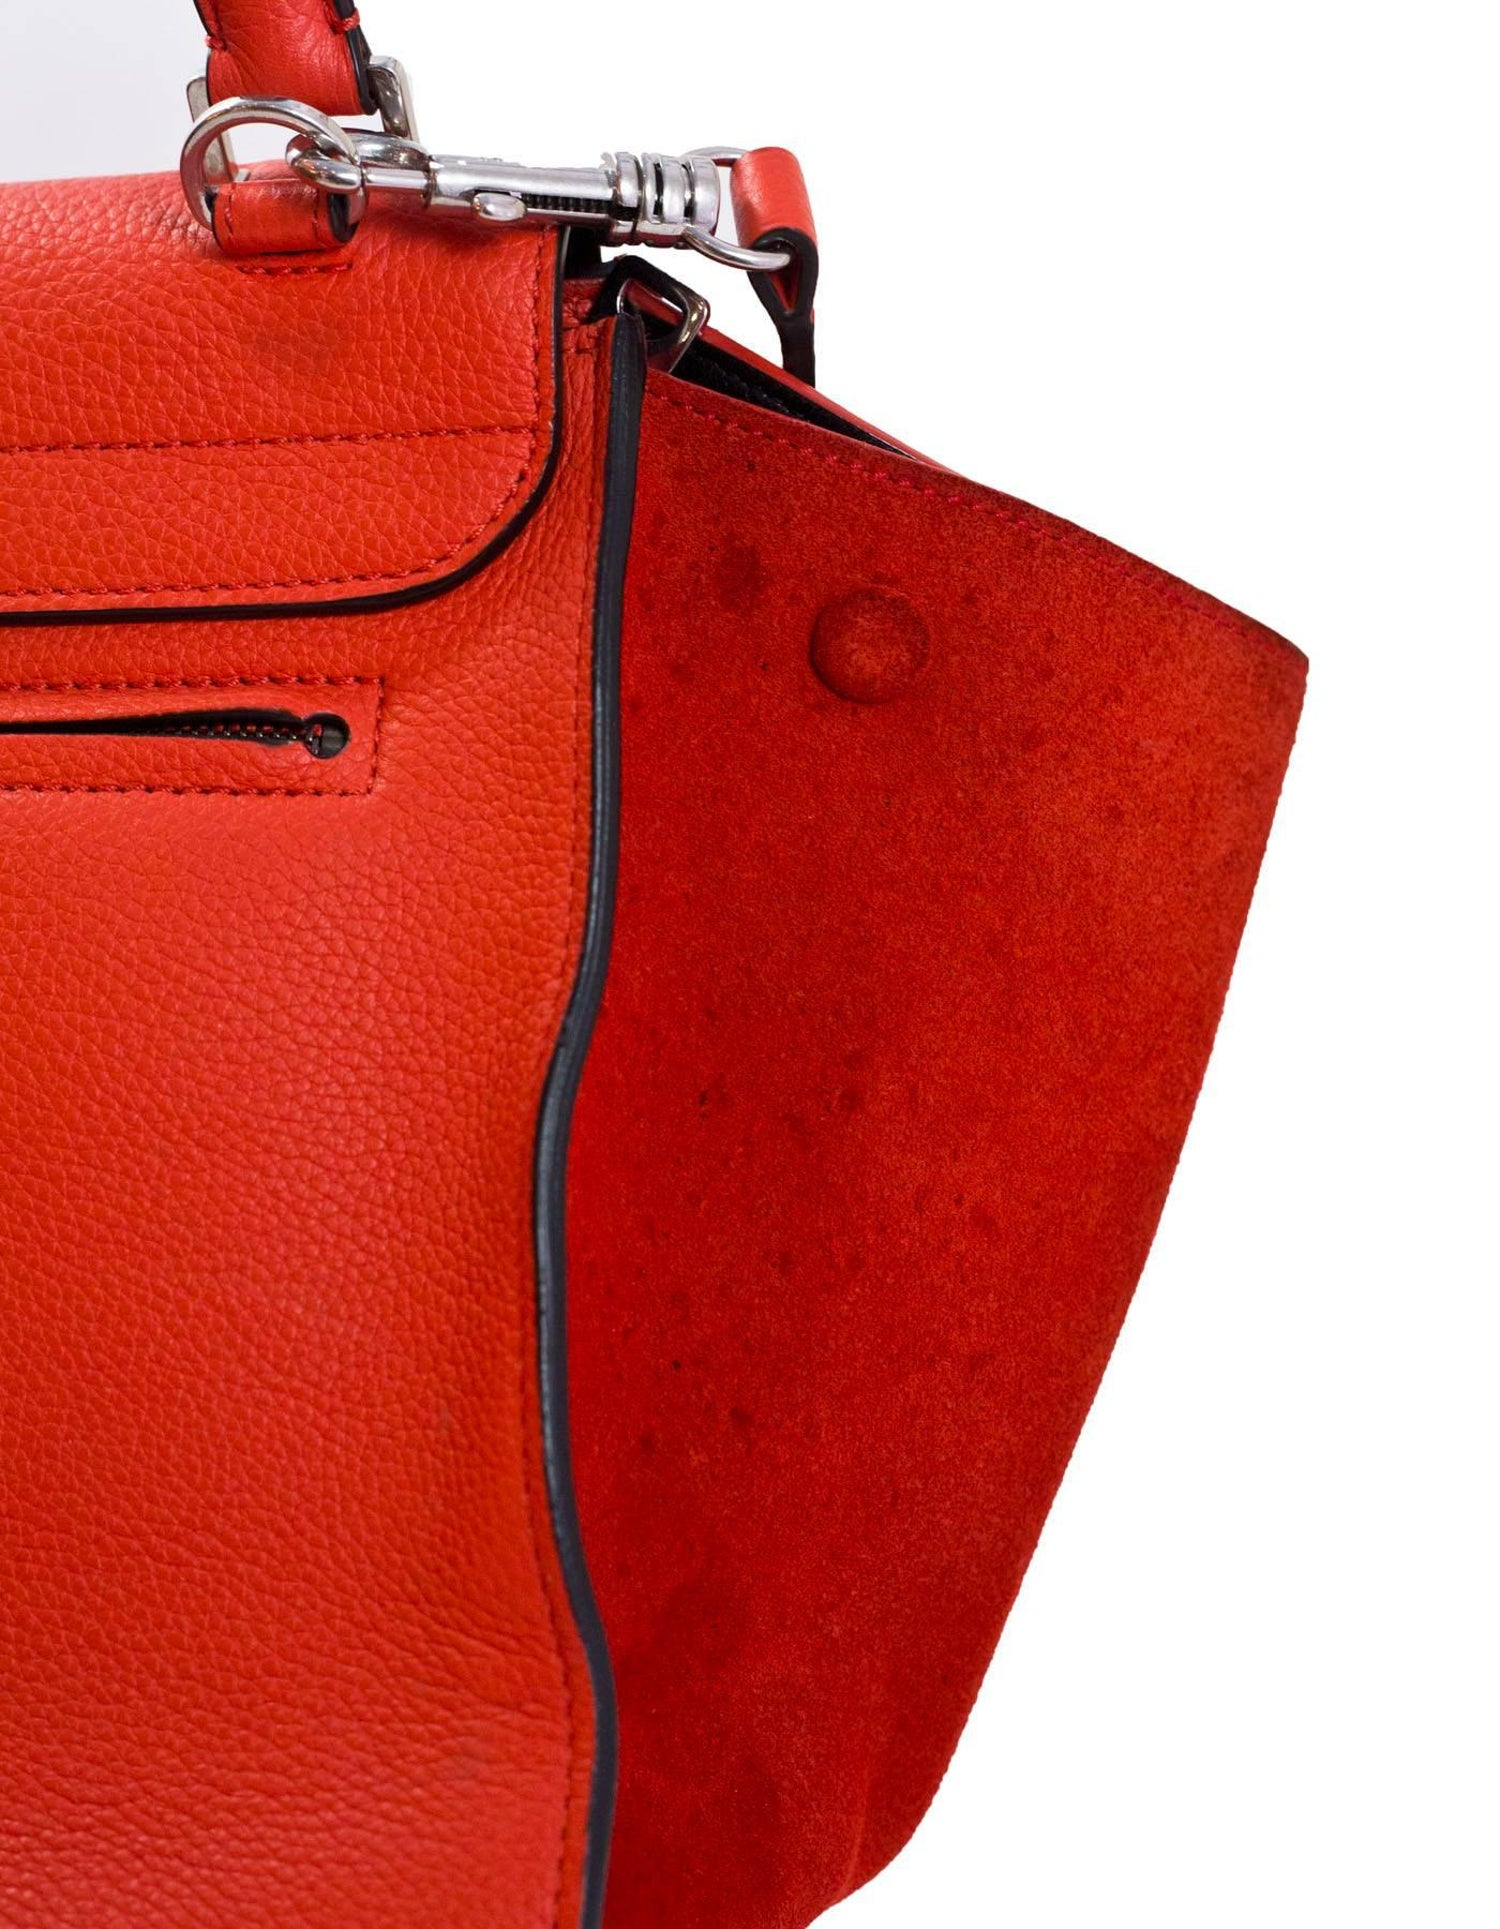 Celine Vermilion Red Leather and Suede Medium Trapeze Bag with DB For Sale  at 1stdibs 87c56353e07a7